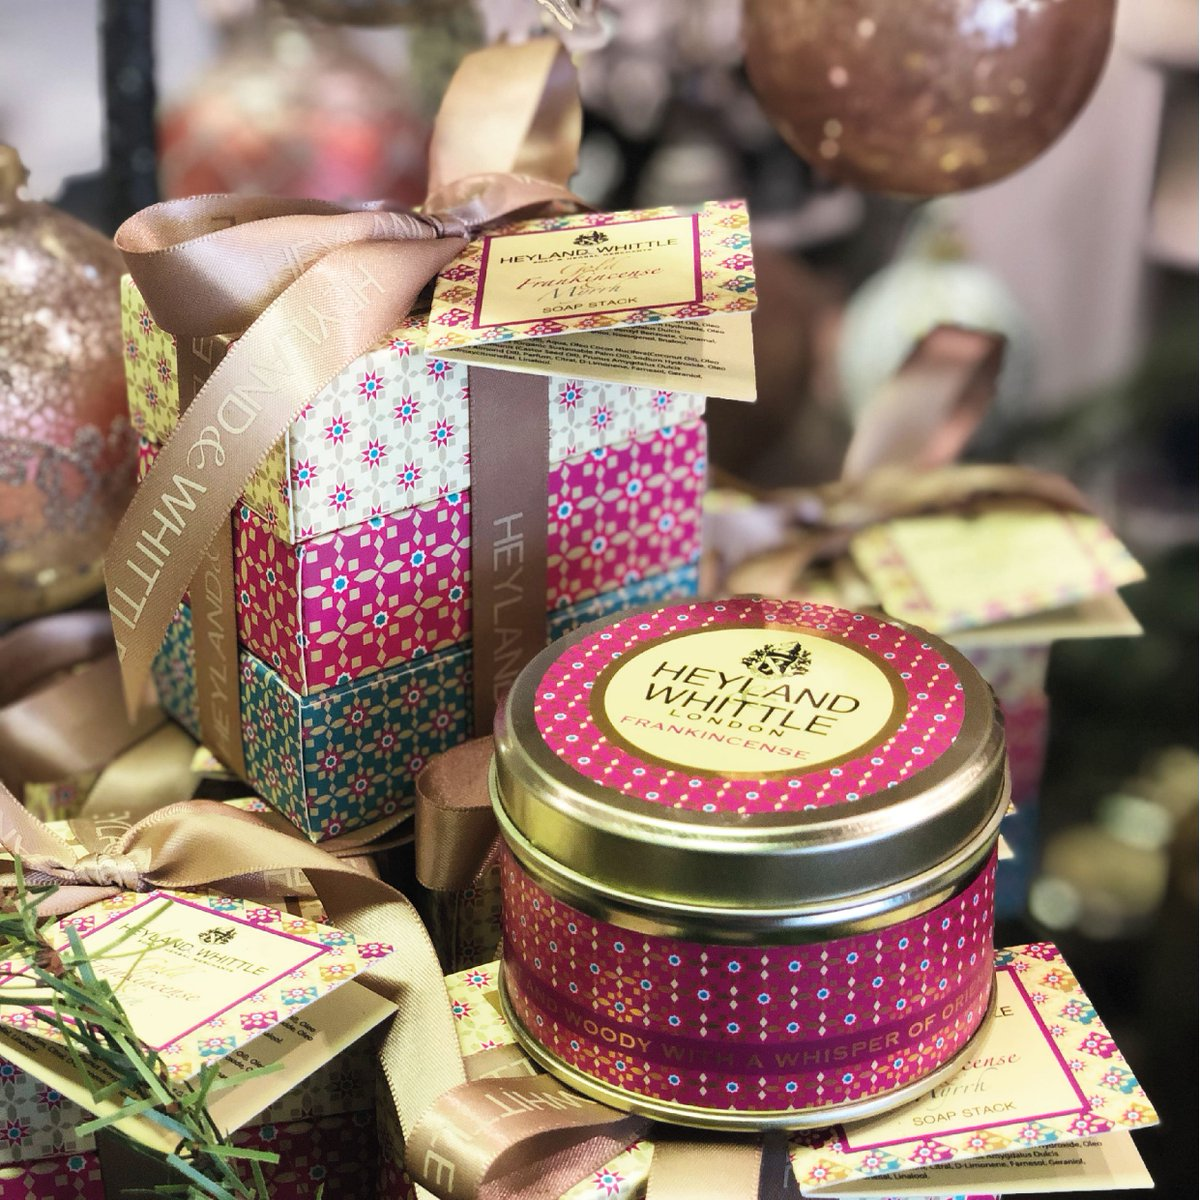 It&#39;s #competition time! For one hour you have the chance to #win a gorgeous Christmas Candle &amp; Soap Stack Set! Tag a friend to enter. Best of luck to all! #inittowinit #WinItWednesday #giveaway #HomeFragrance #LuxuryCandles #TagAFriend #LikeToWin #gifting #christmasgifts<br>http://pic.twitter.com/gLVsT0zsOk